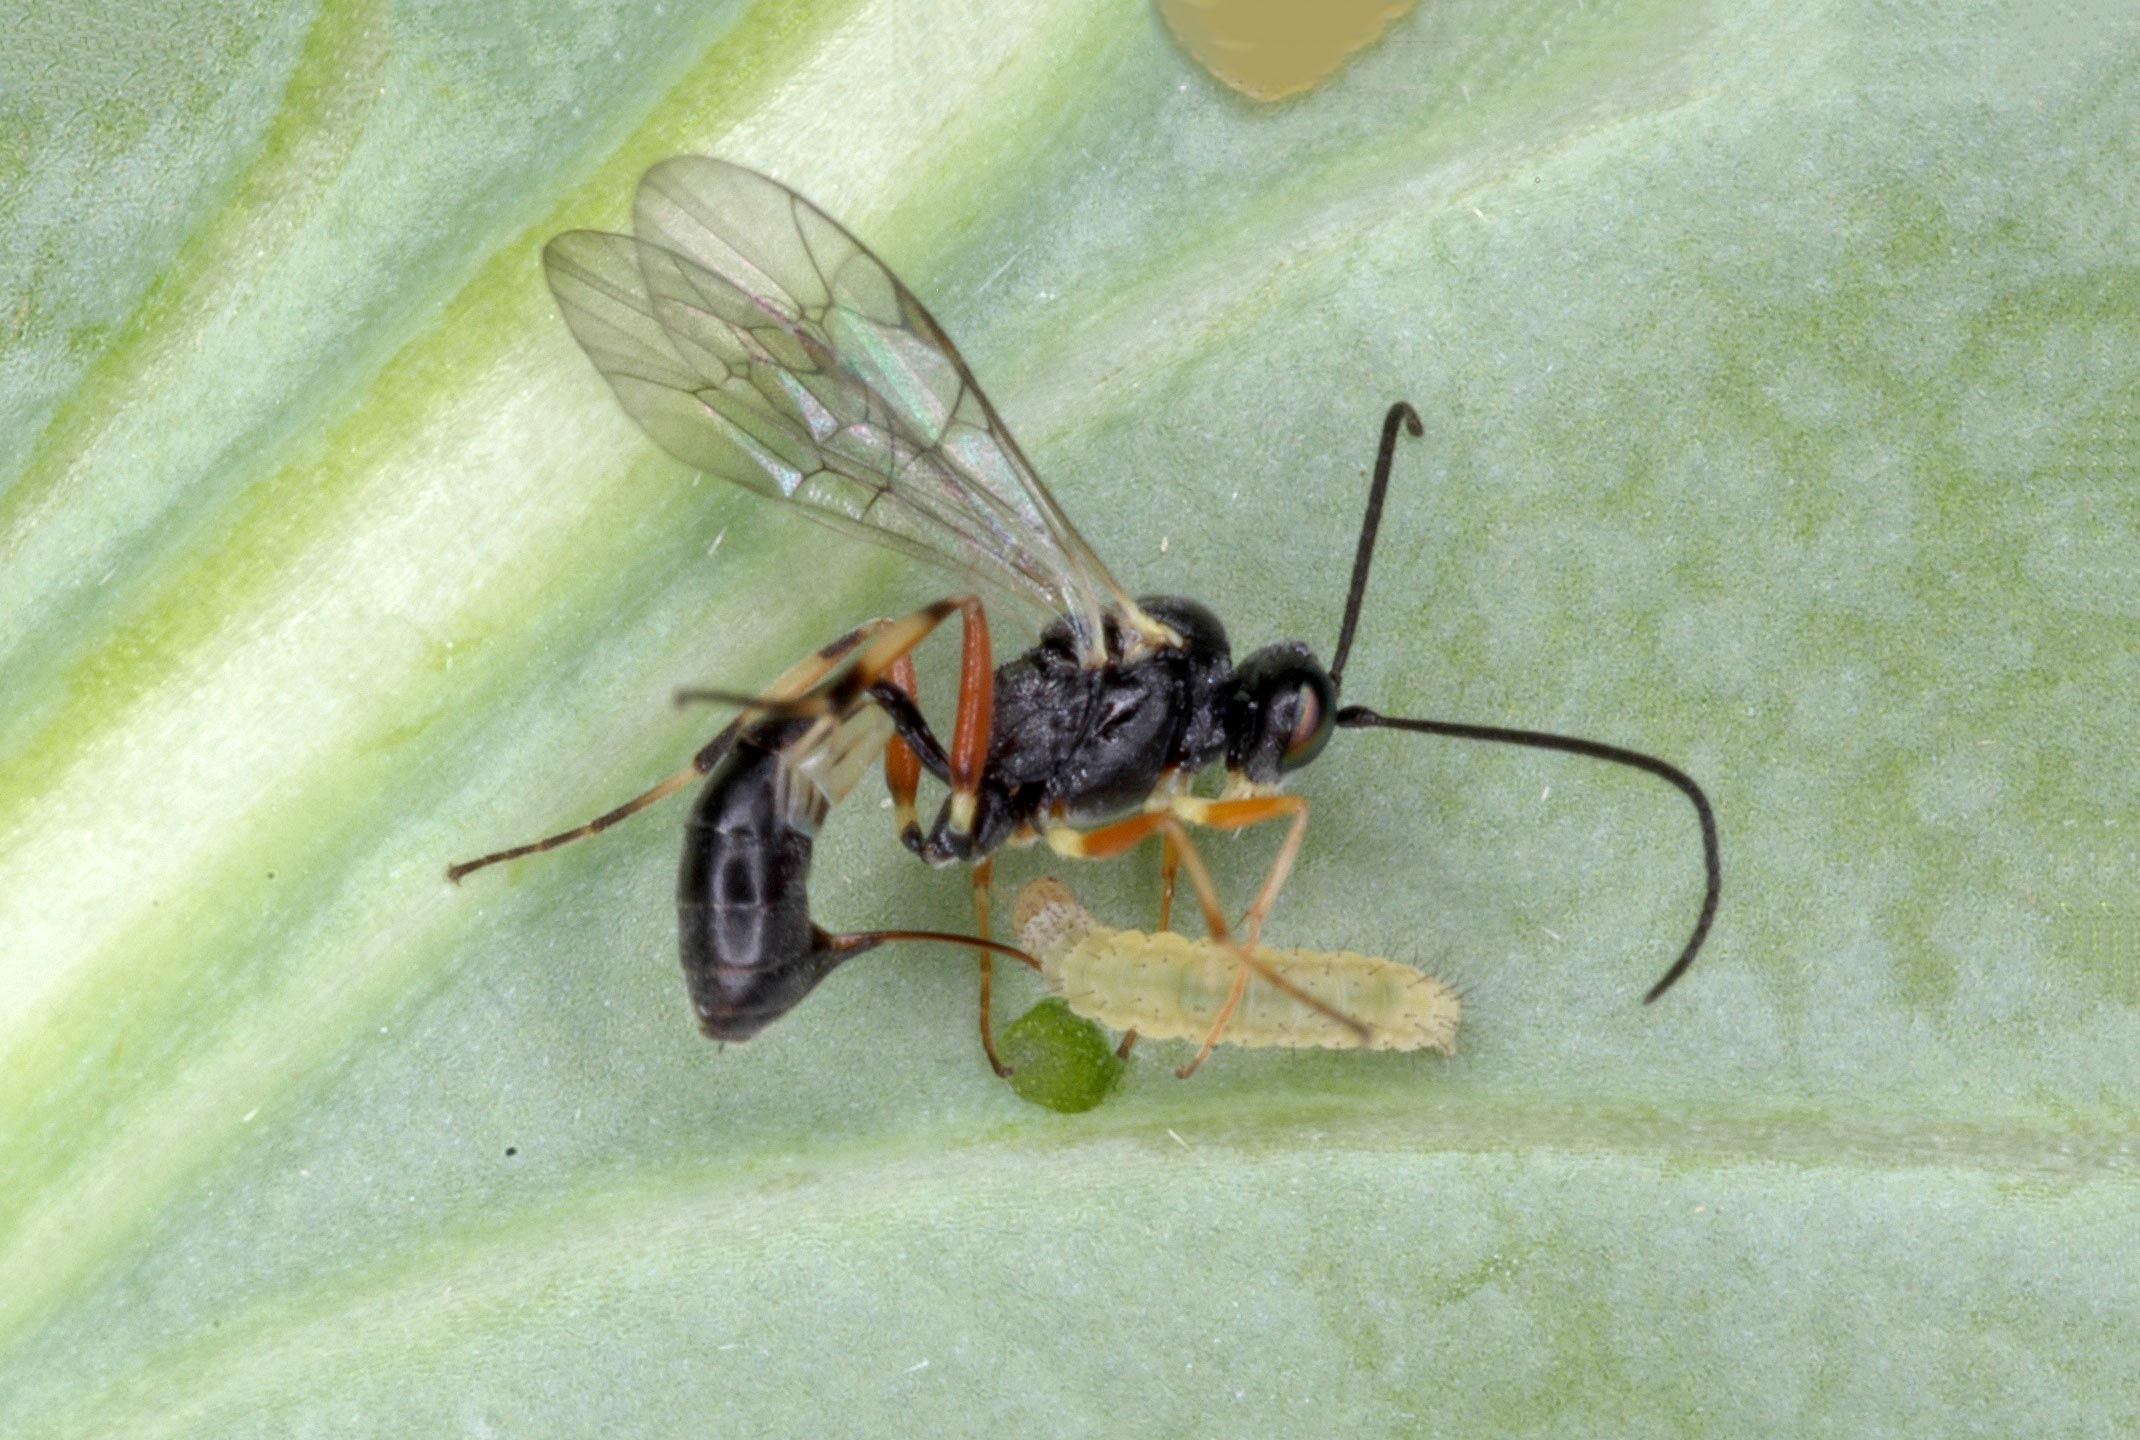 Natural Pest Control: Biological Control of Insect Pests Is Farmers Saving Billions of Dollars